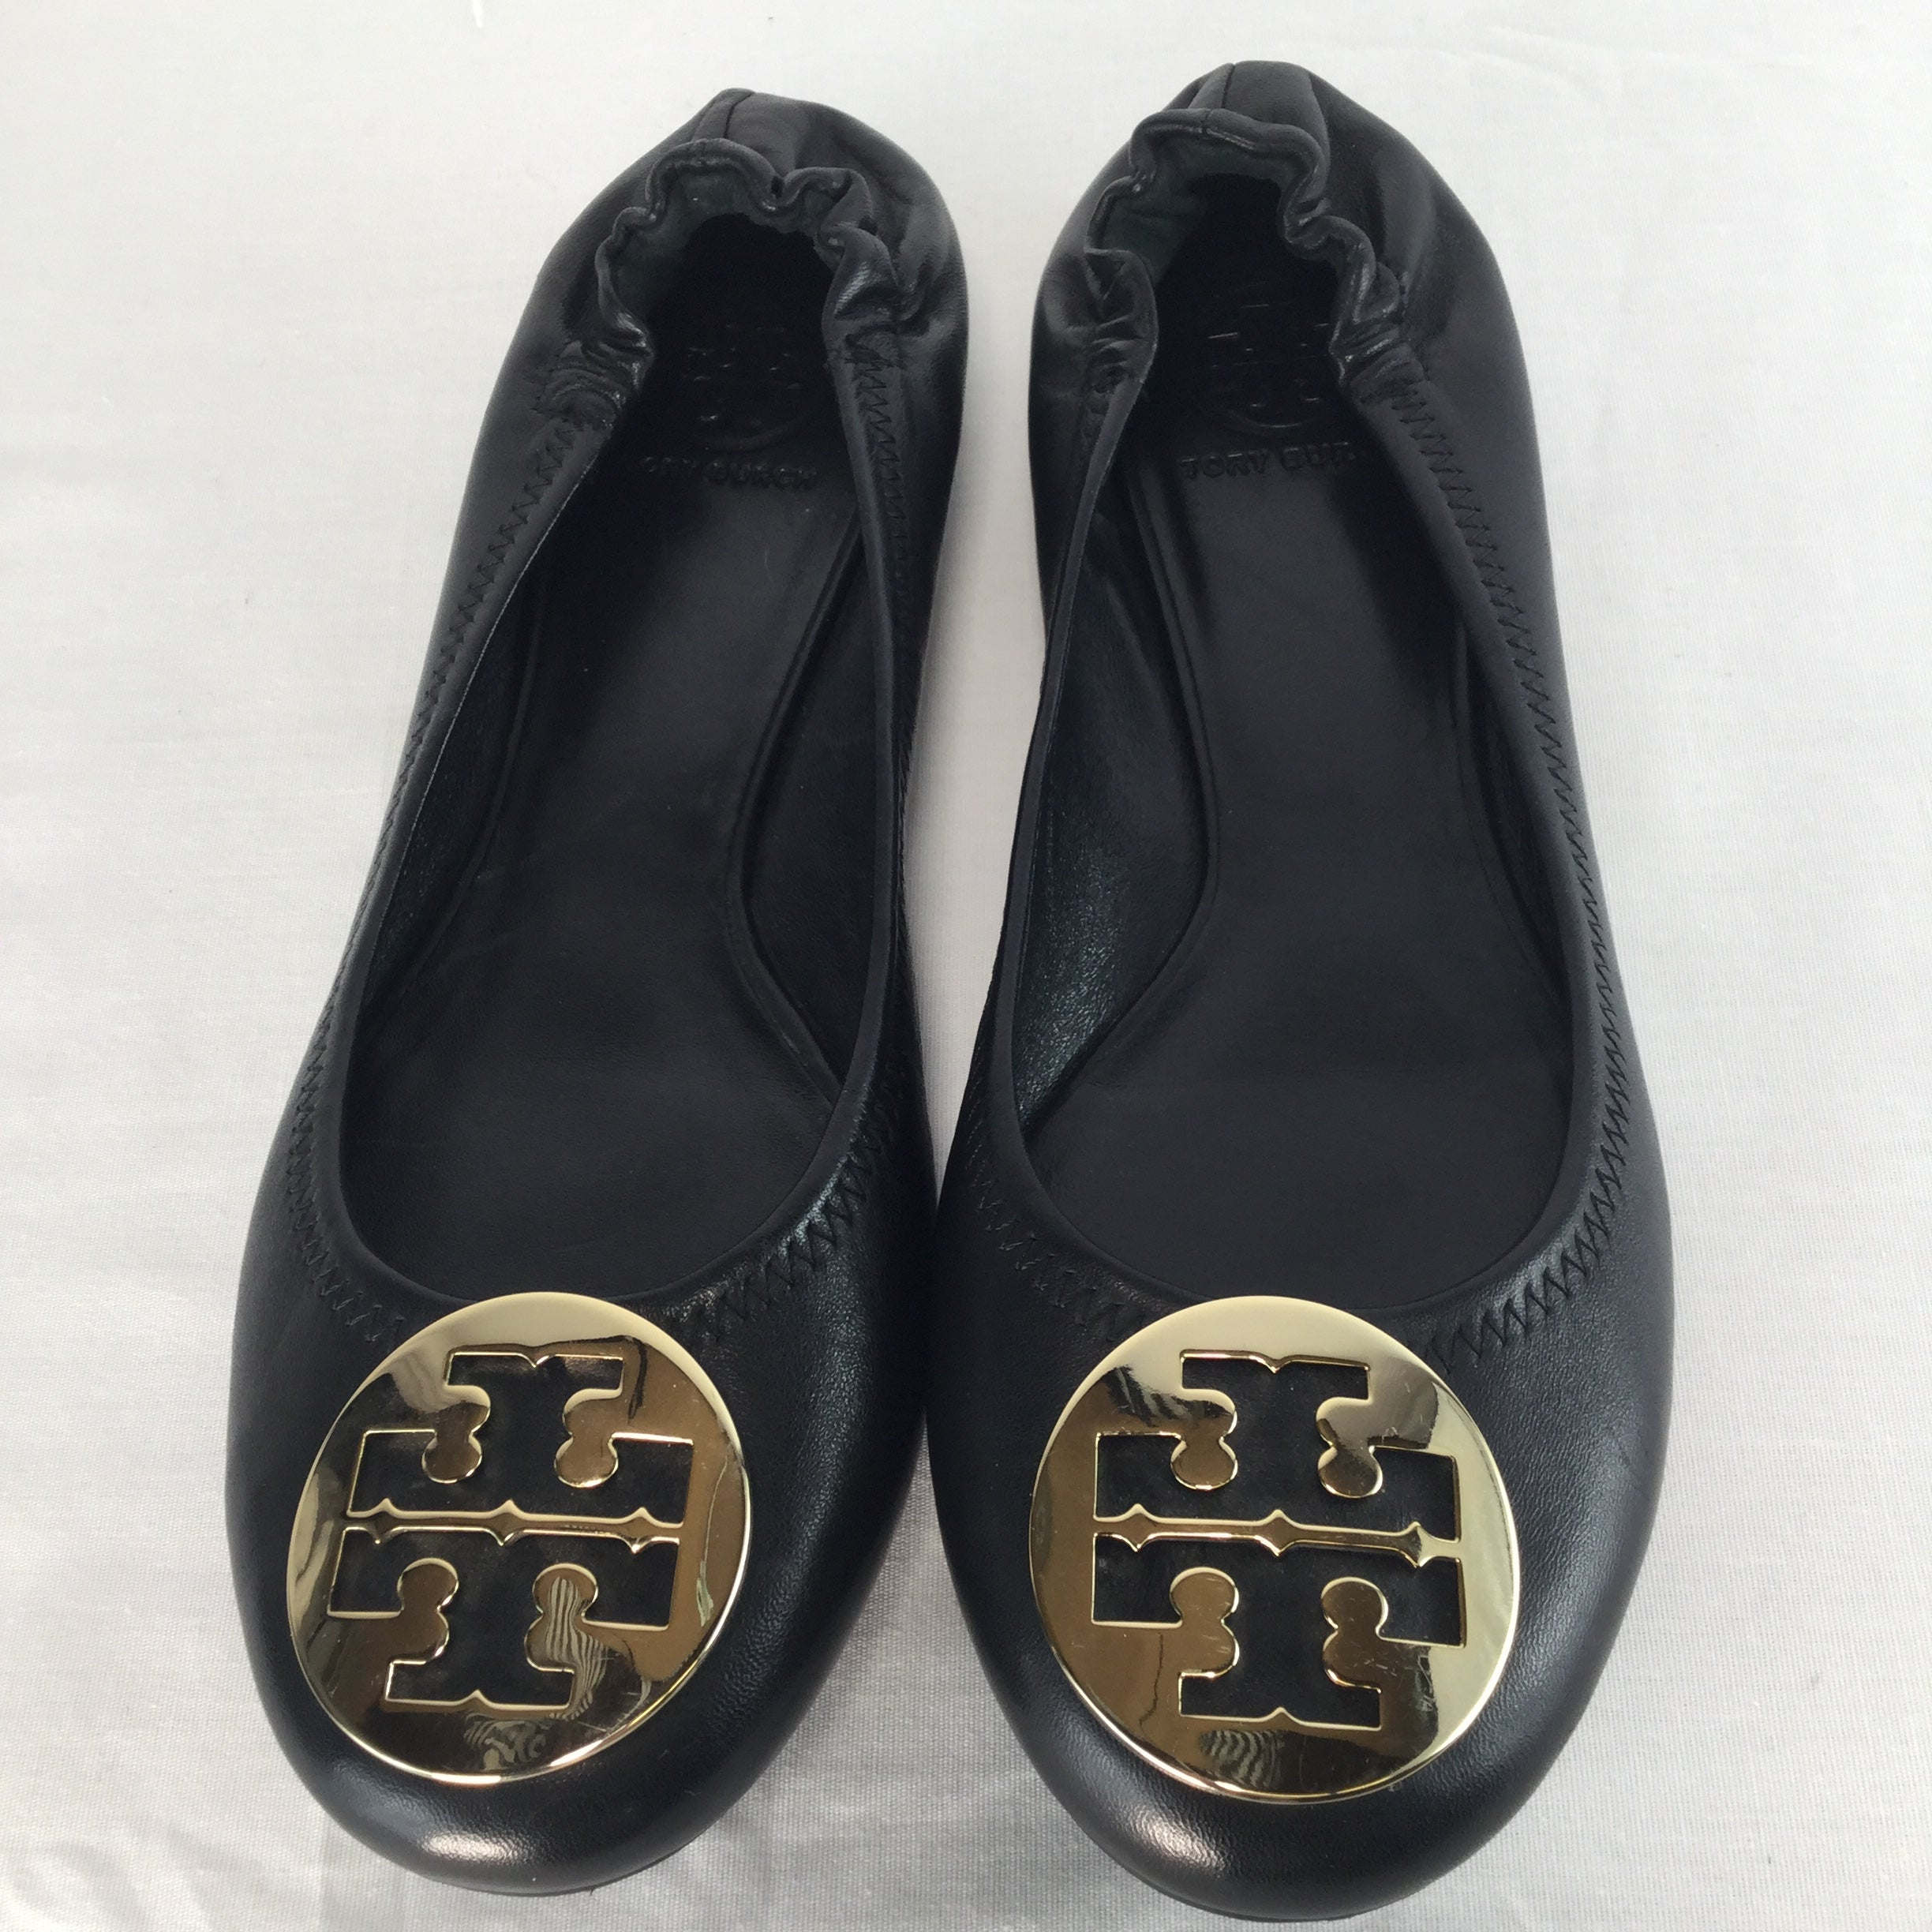 SHOES, - CLASSIC MINNIE TRAVEL LEATHER BLACK FLATS